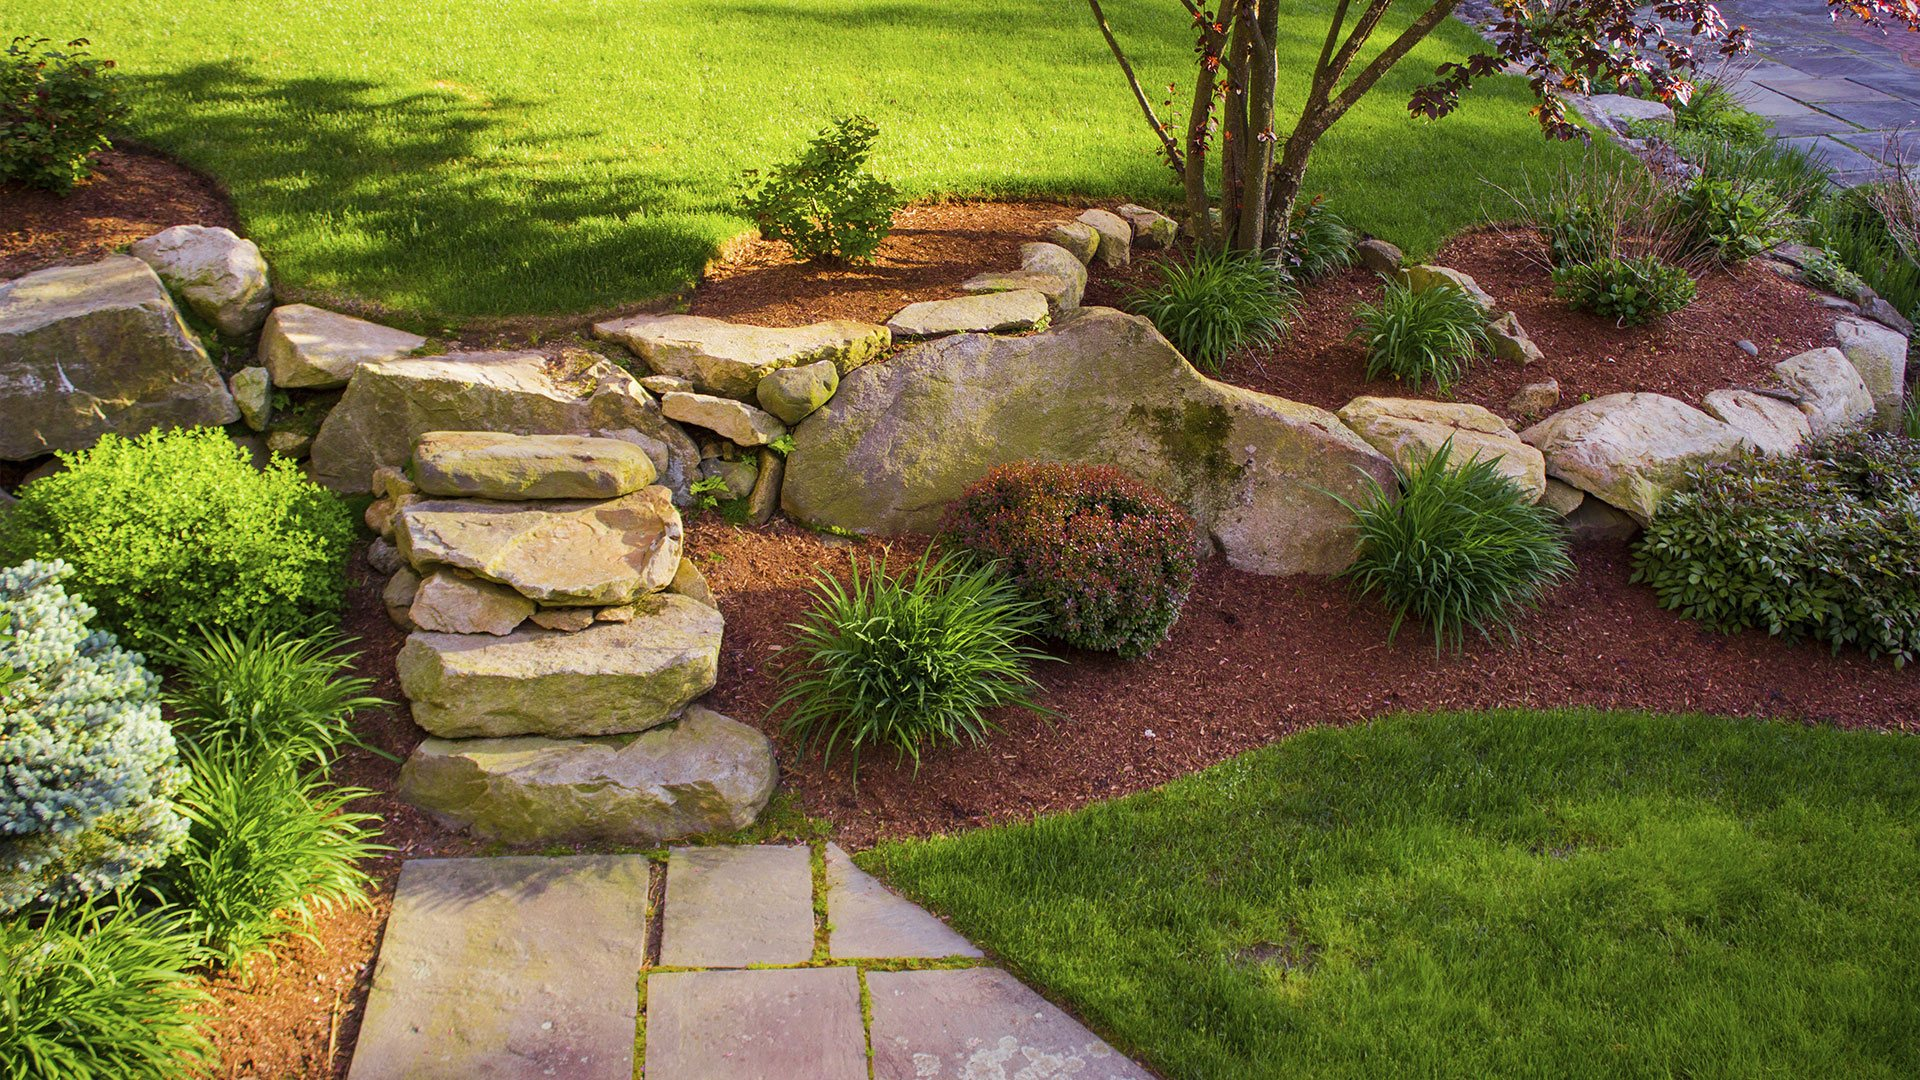 Cherry Oak Landscaping Lawn Care Services, Landscape Design and Landscaping Services slide 3